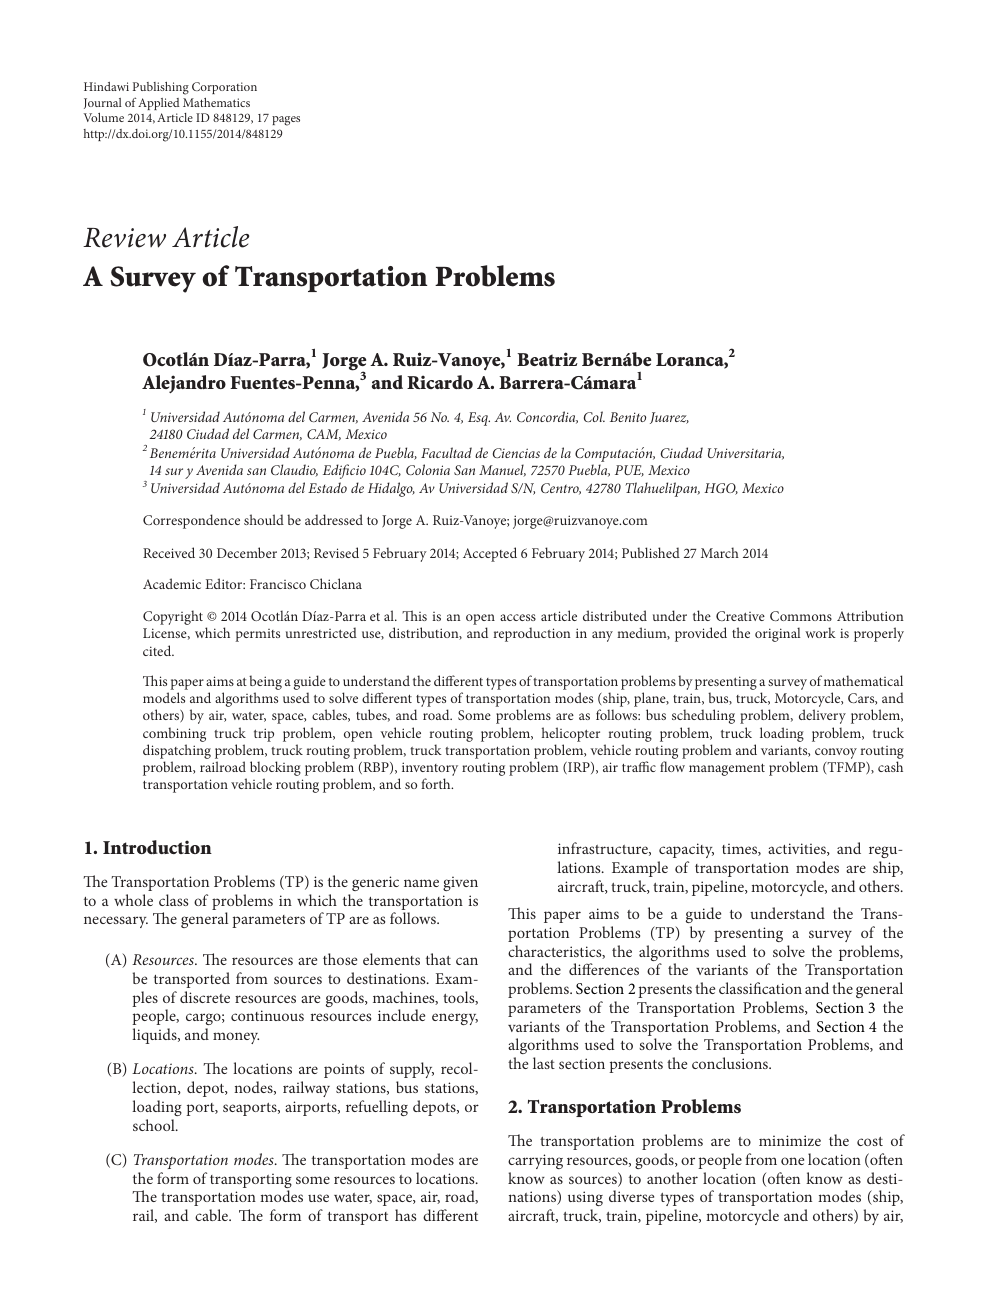 A Survey of Transportation Problems – topic of research paper in